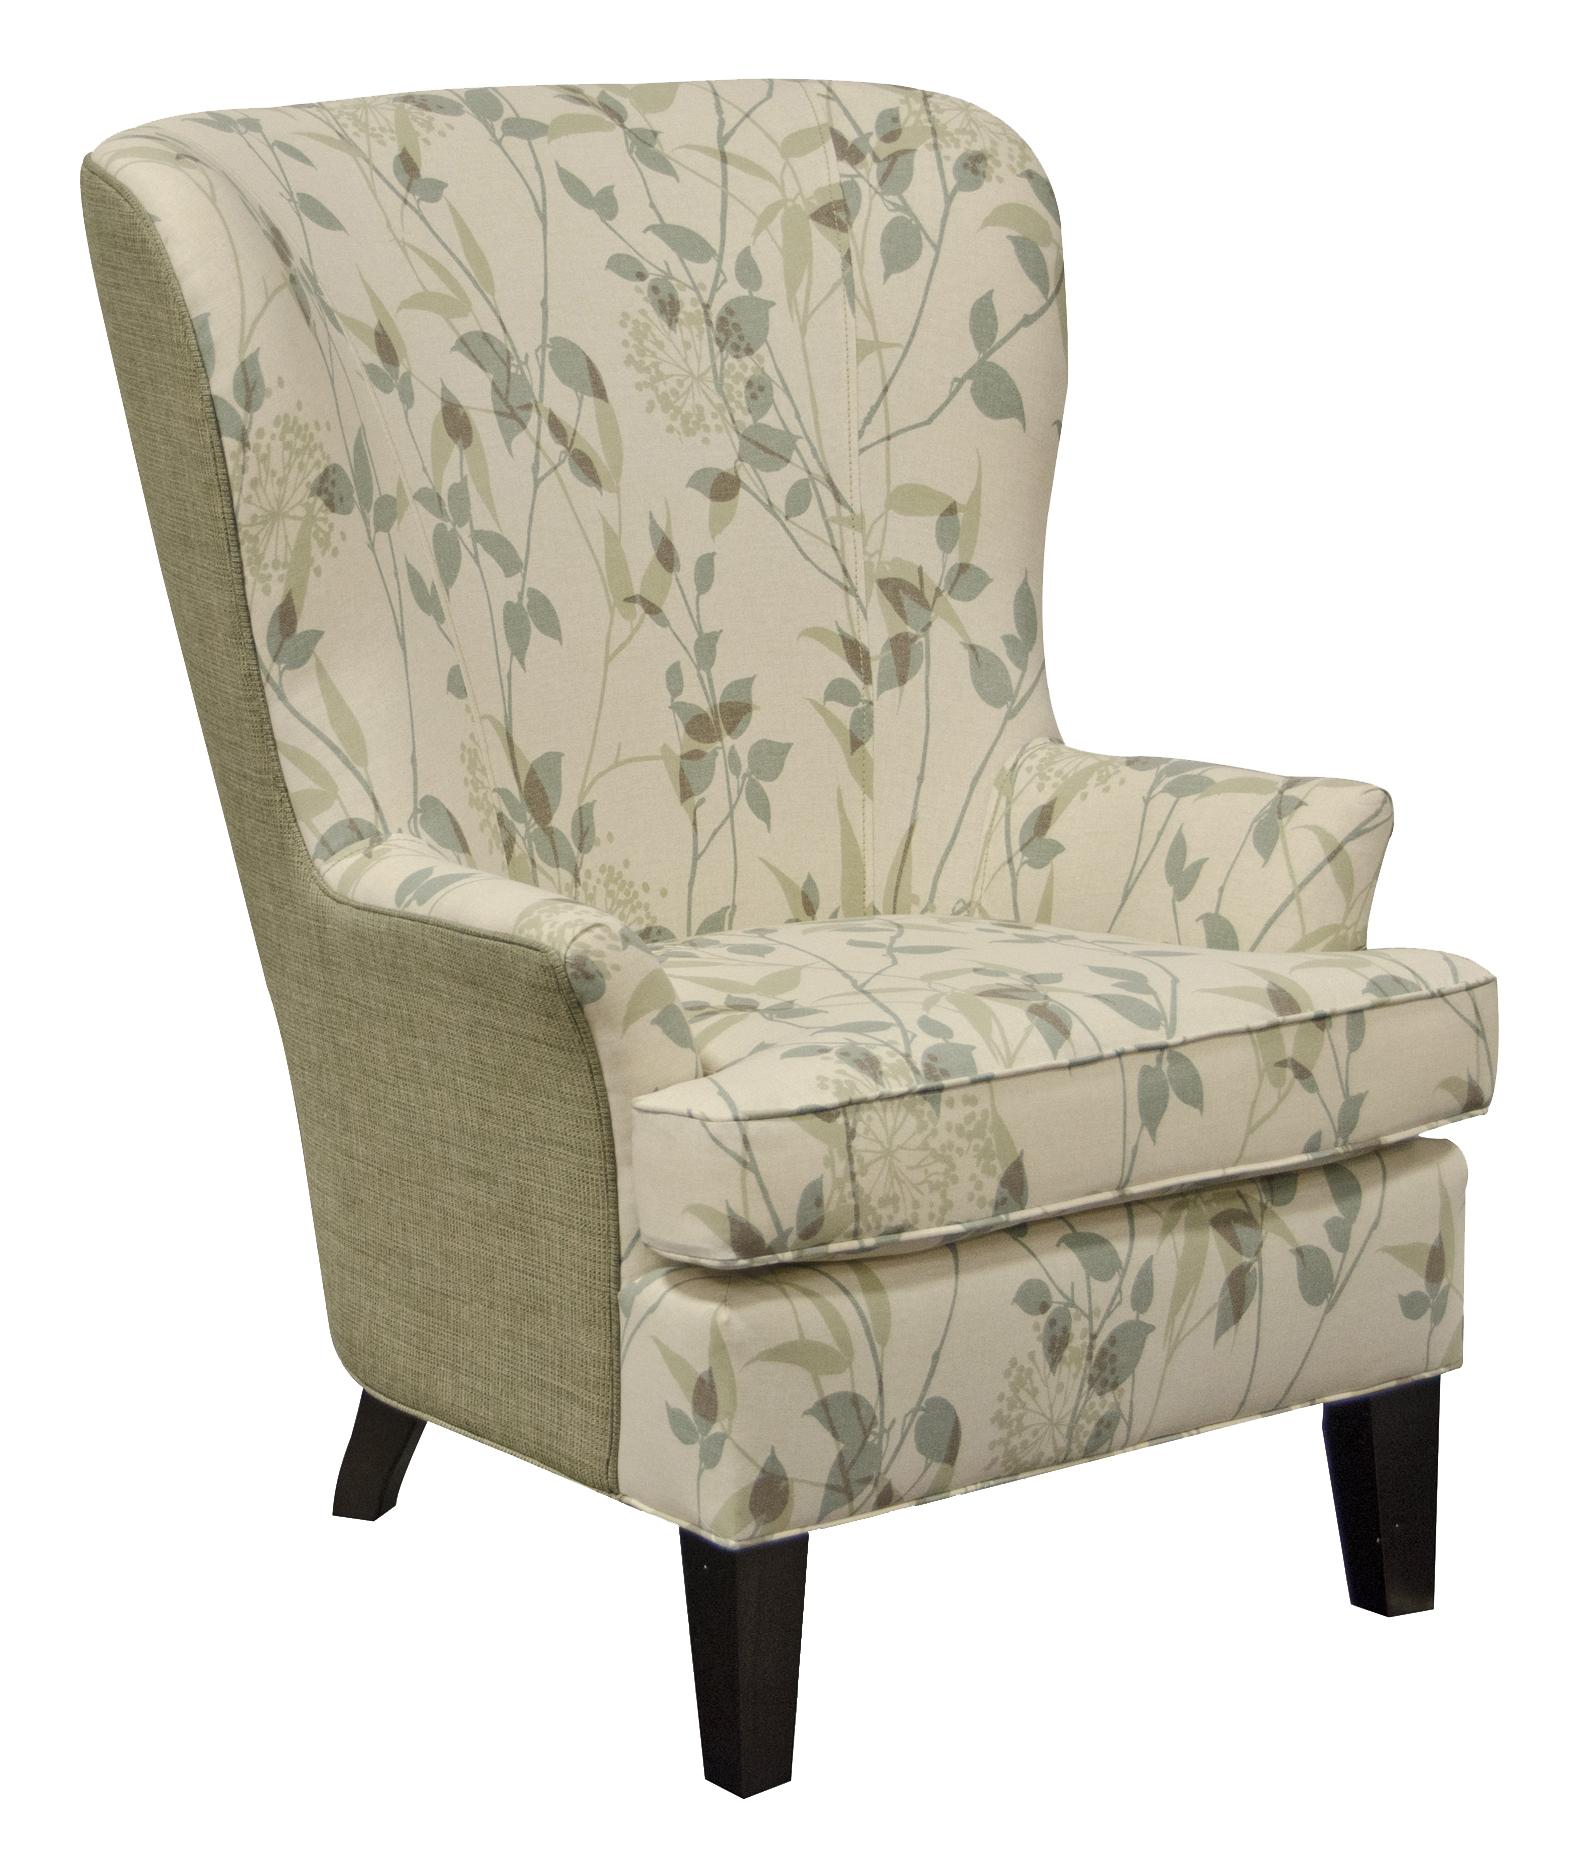 England Smith Living Room Arm Chair With Wing Style EFO Furniture Outlet